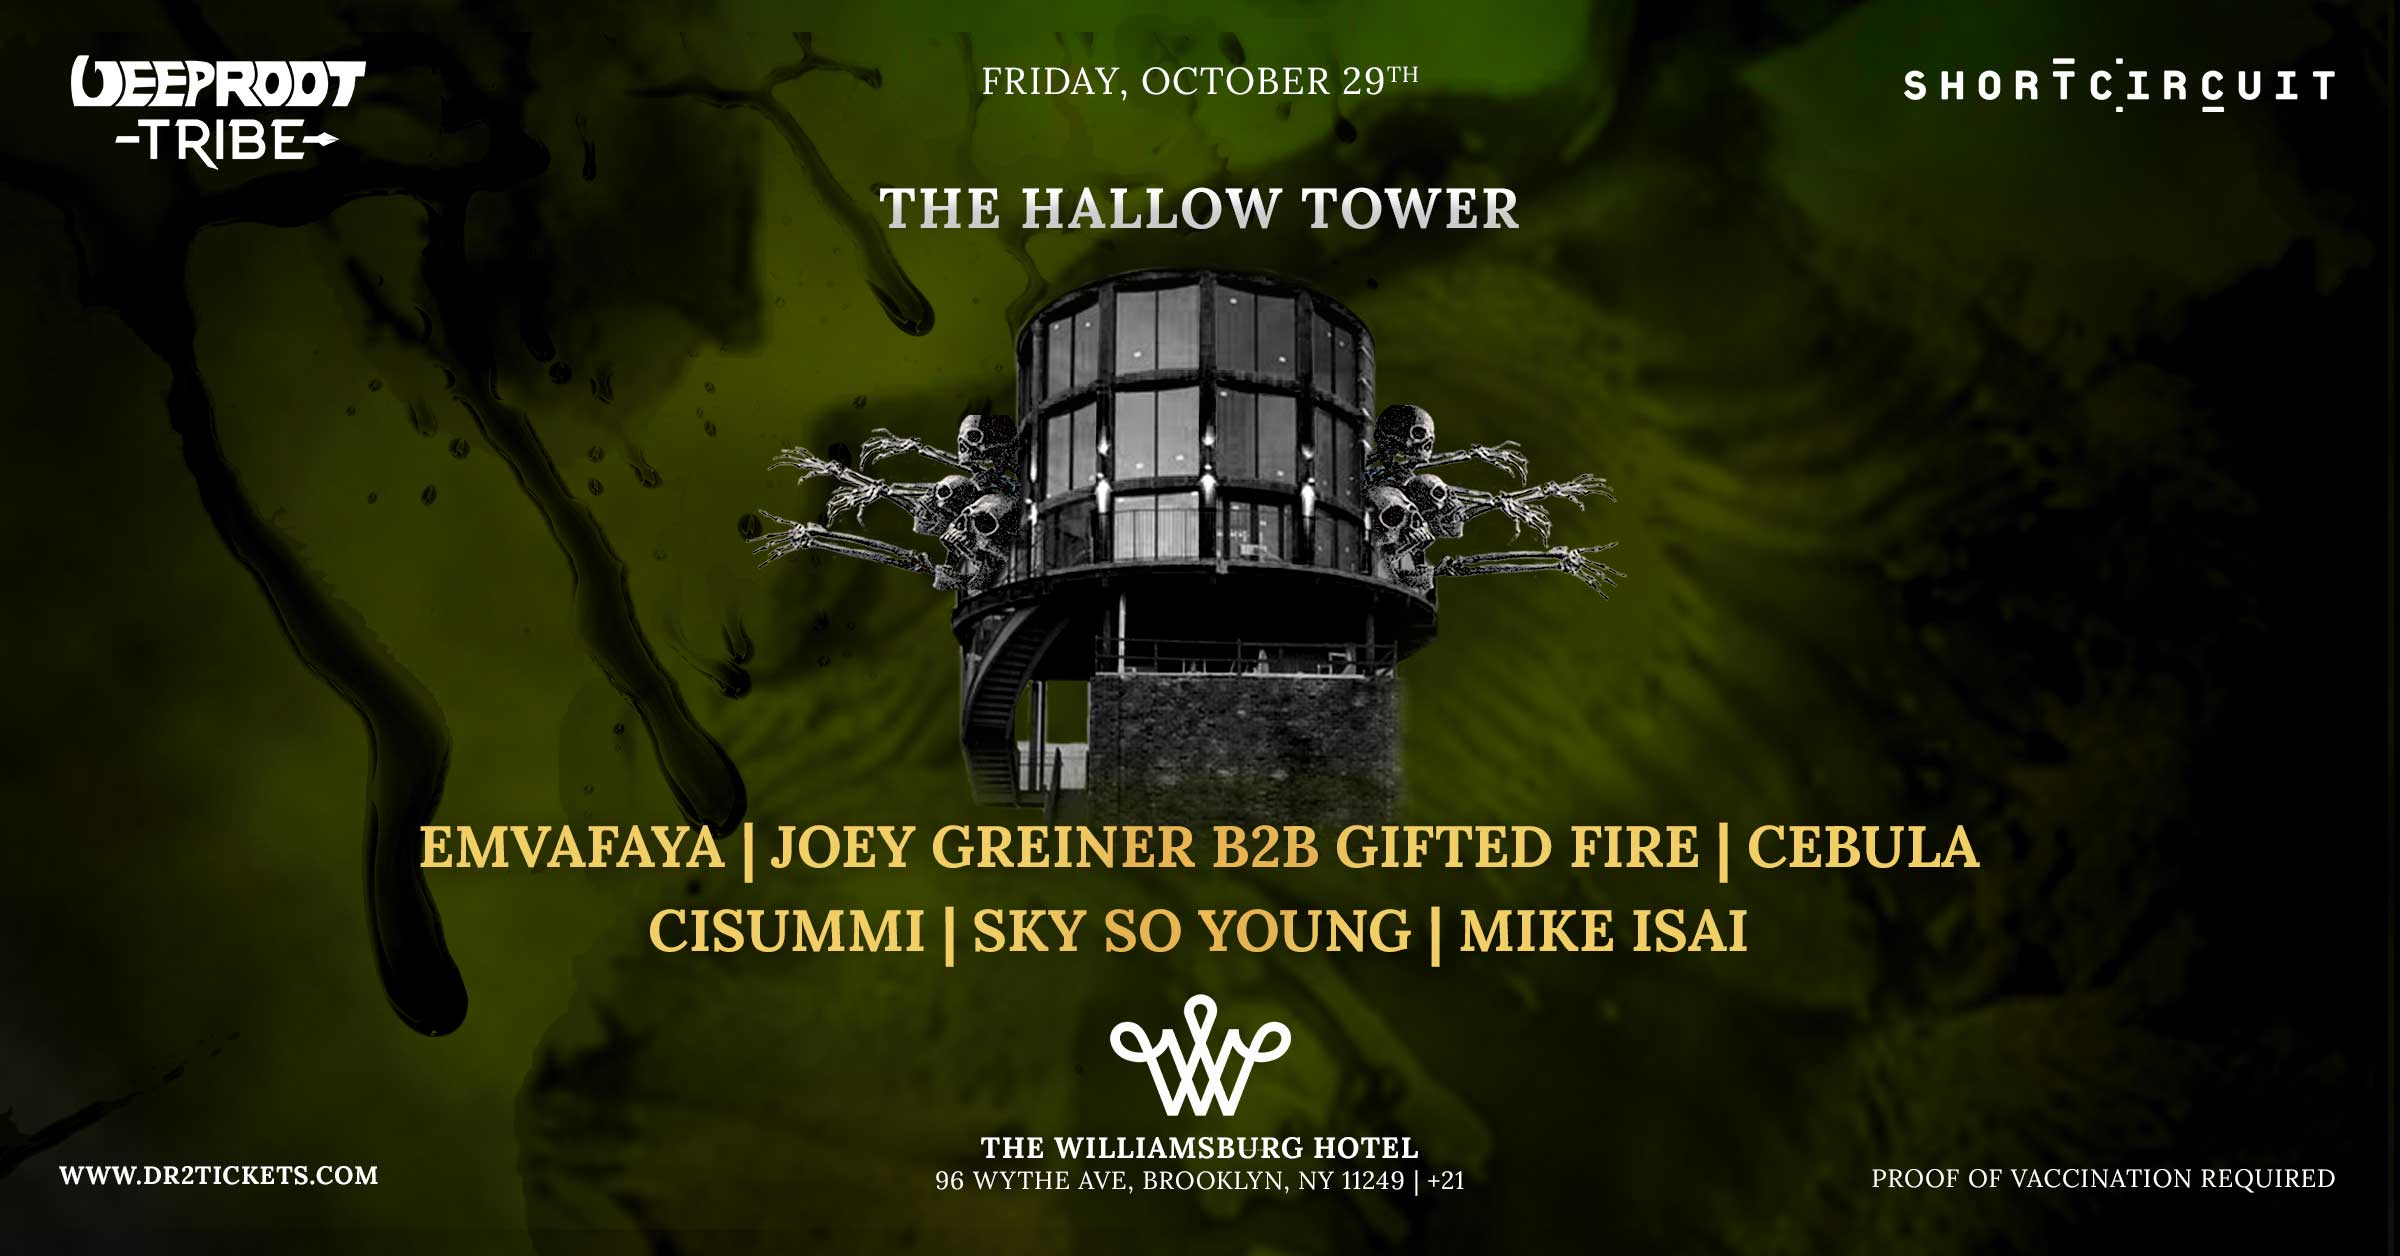 The Hallow Tower At The Williamsburg Hotel [10/29]